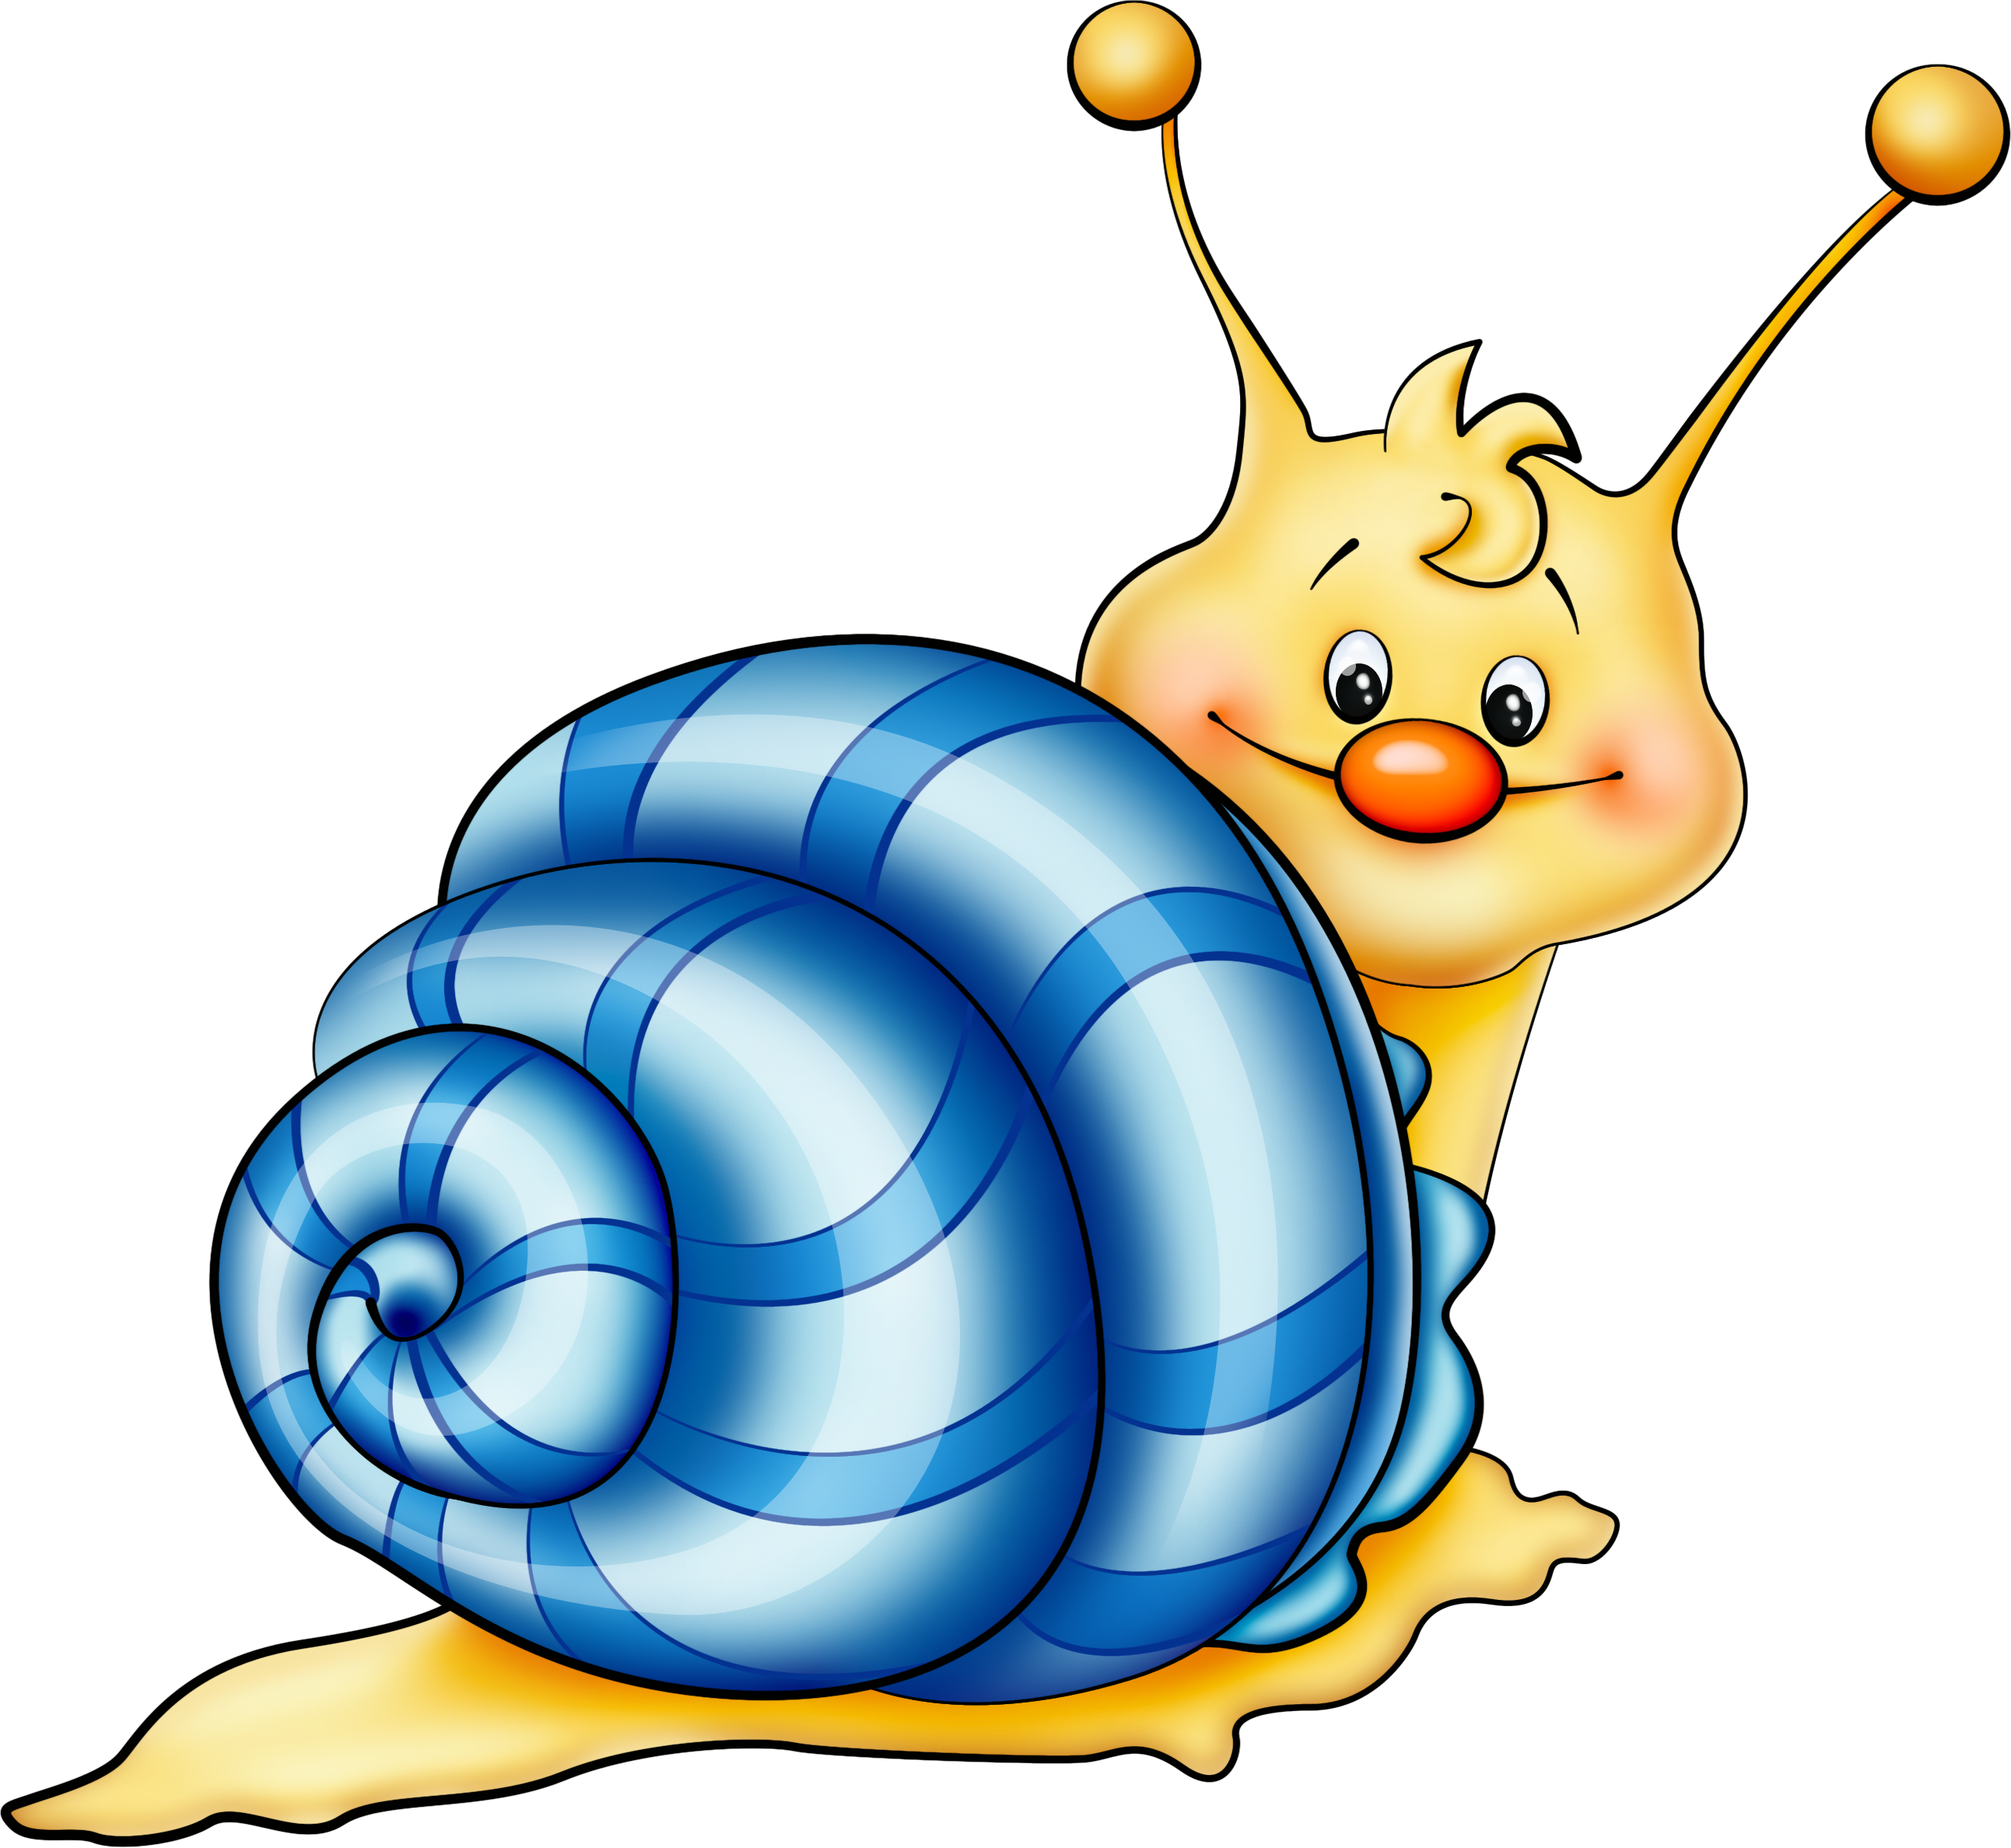 Snail graphic vector png. Blue cartoon picture obr